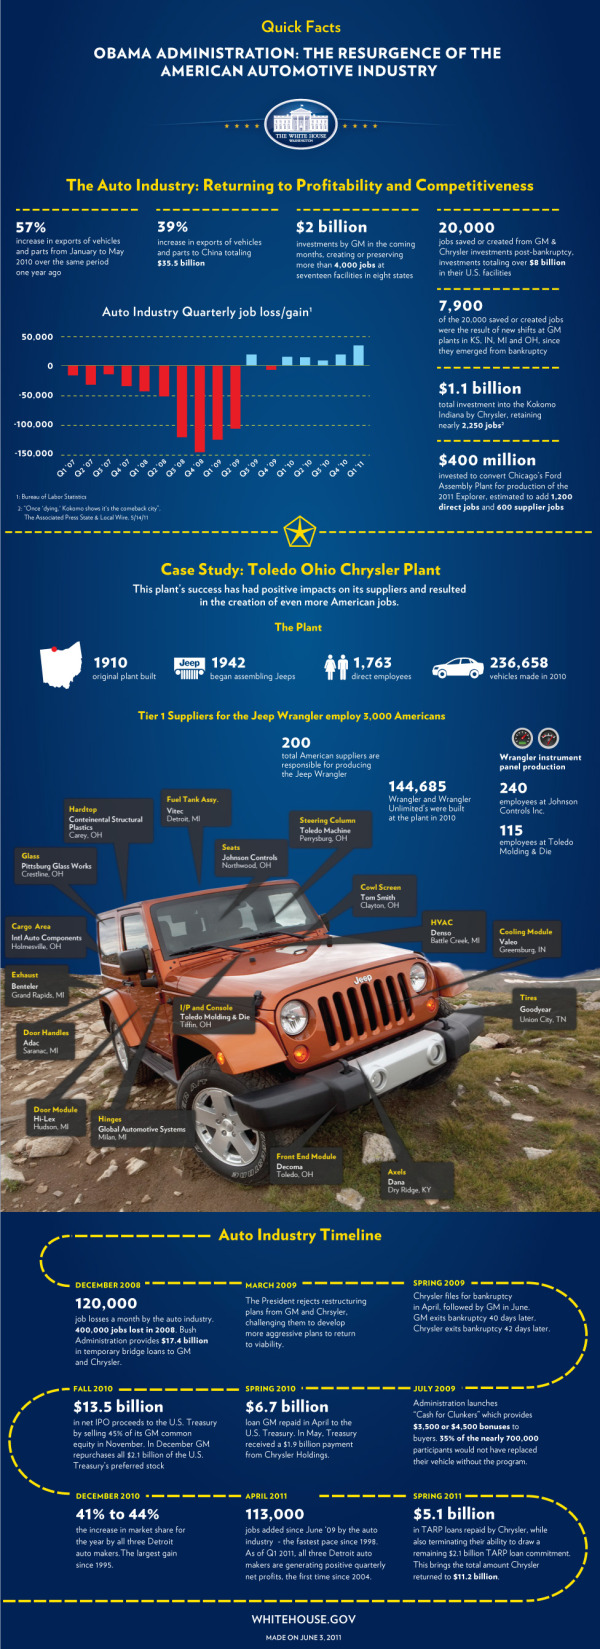 White House Infographic: The Resurgence of the American Automotive Industry infographic